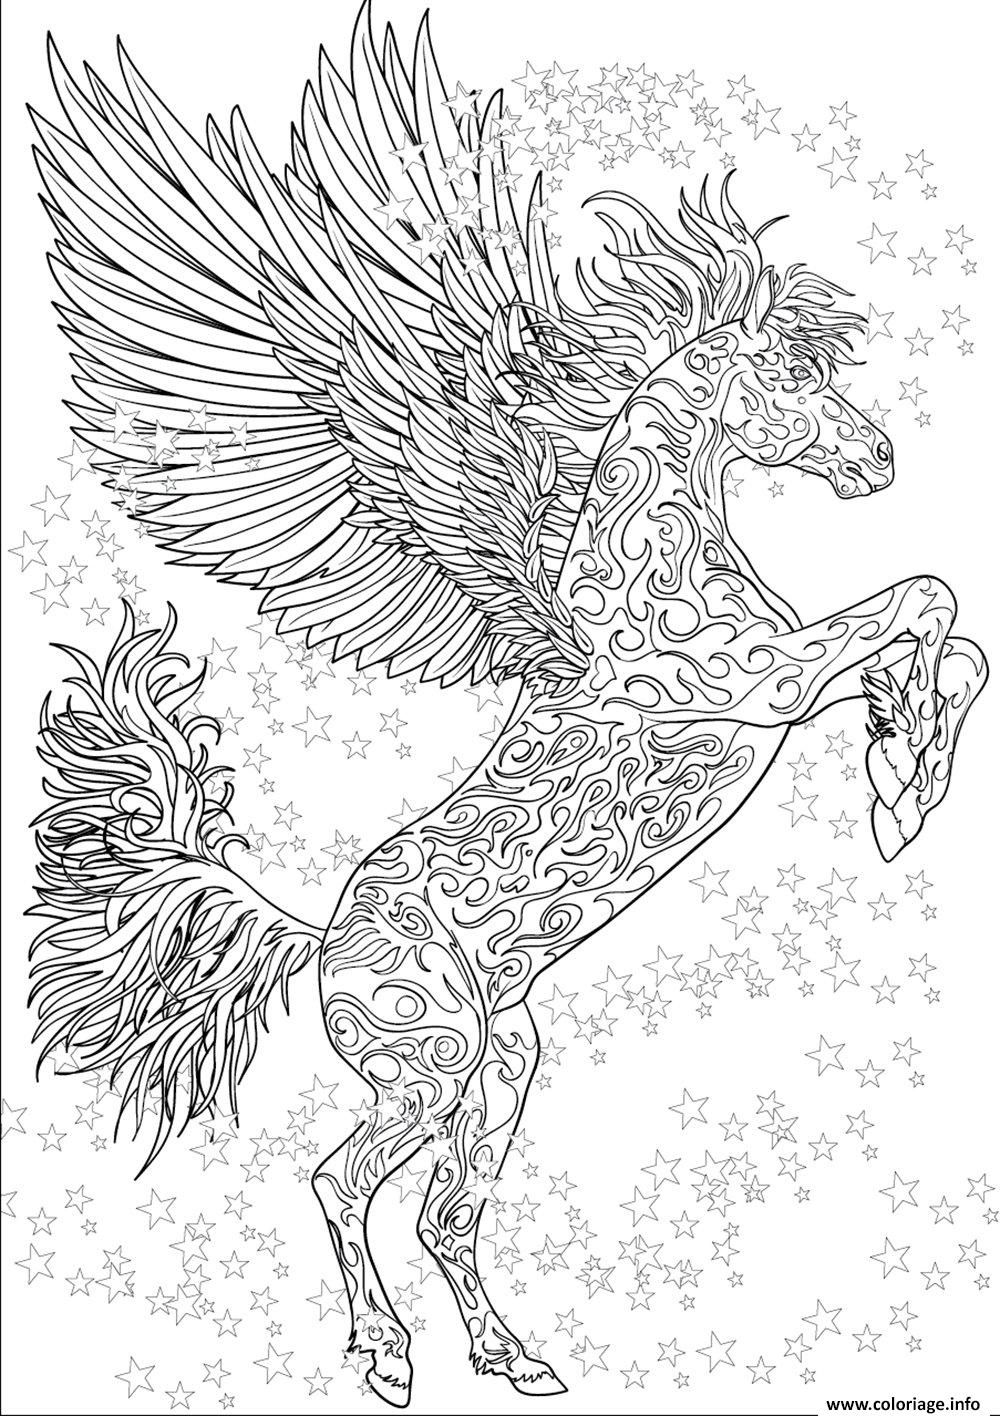 Coloriage cheval adulte licorne ailes antistress etoiles - Image anti stress ...